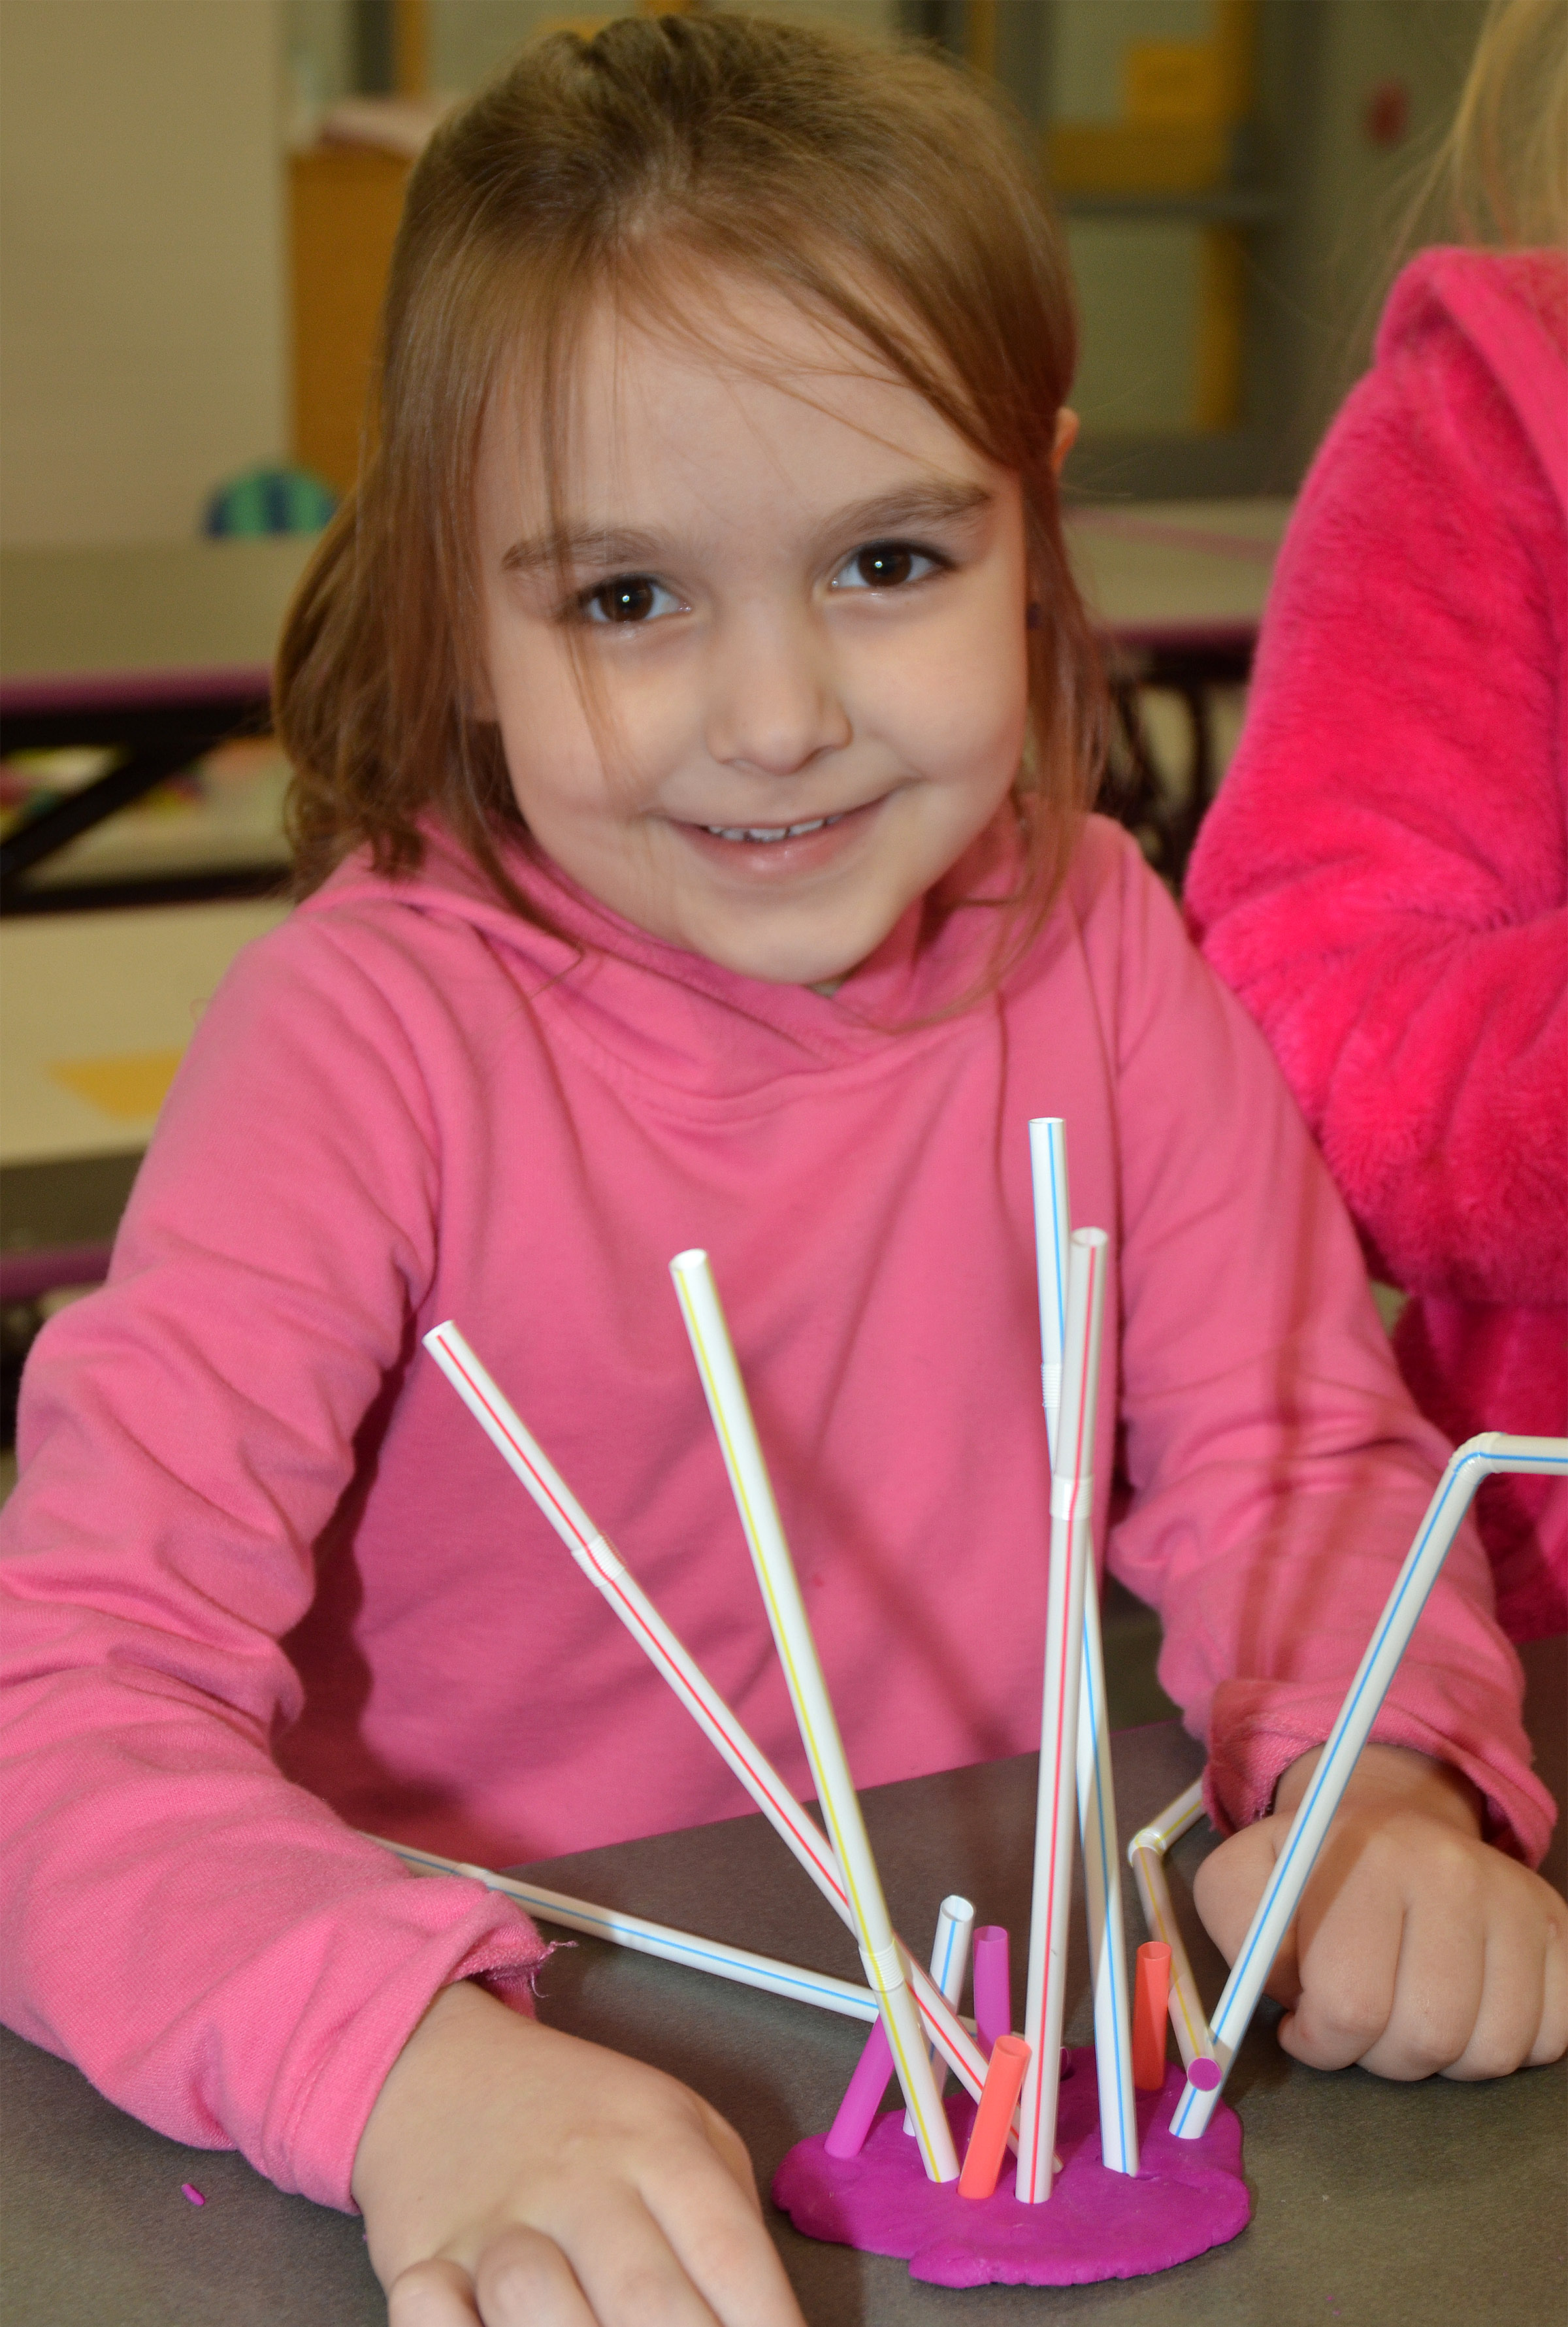 CES kindergartener Aubrey Allen smiles with the sculpture she made out of Play-Doh and straws.